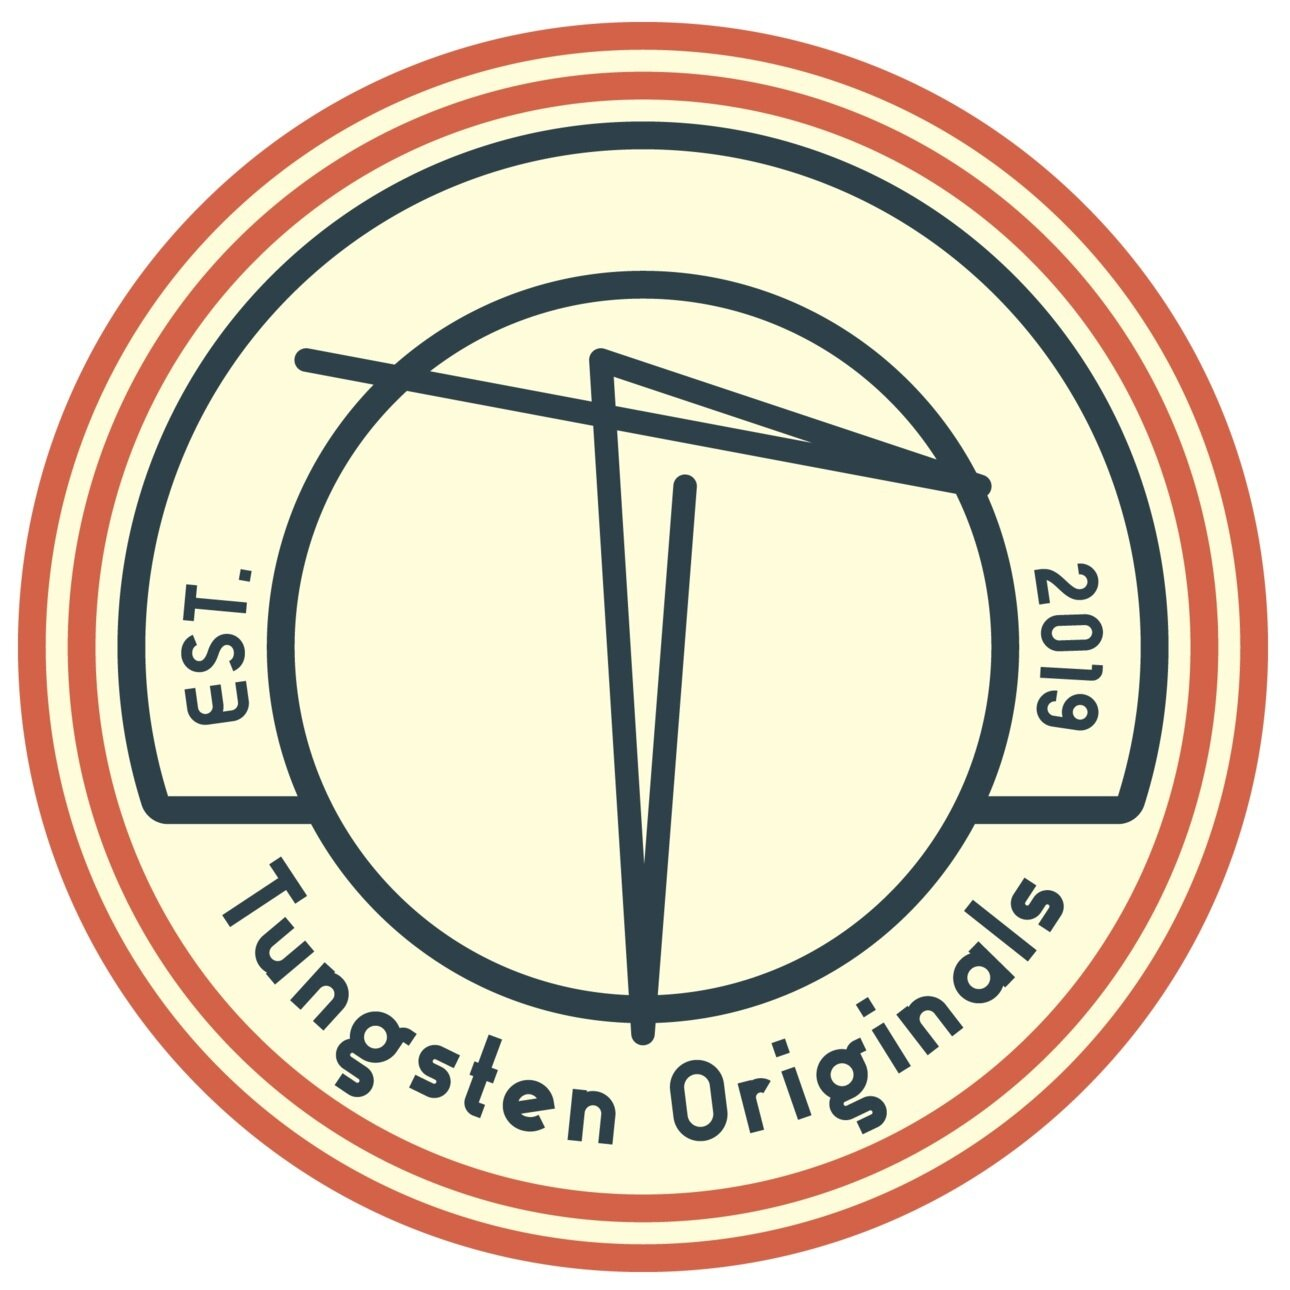 Tungsten Originals